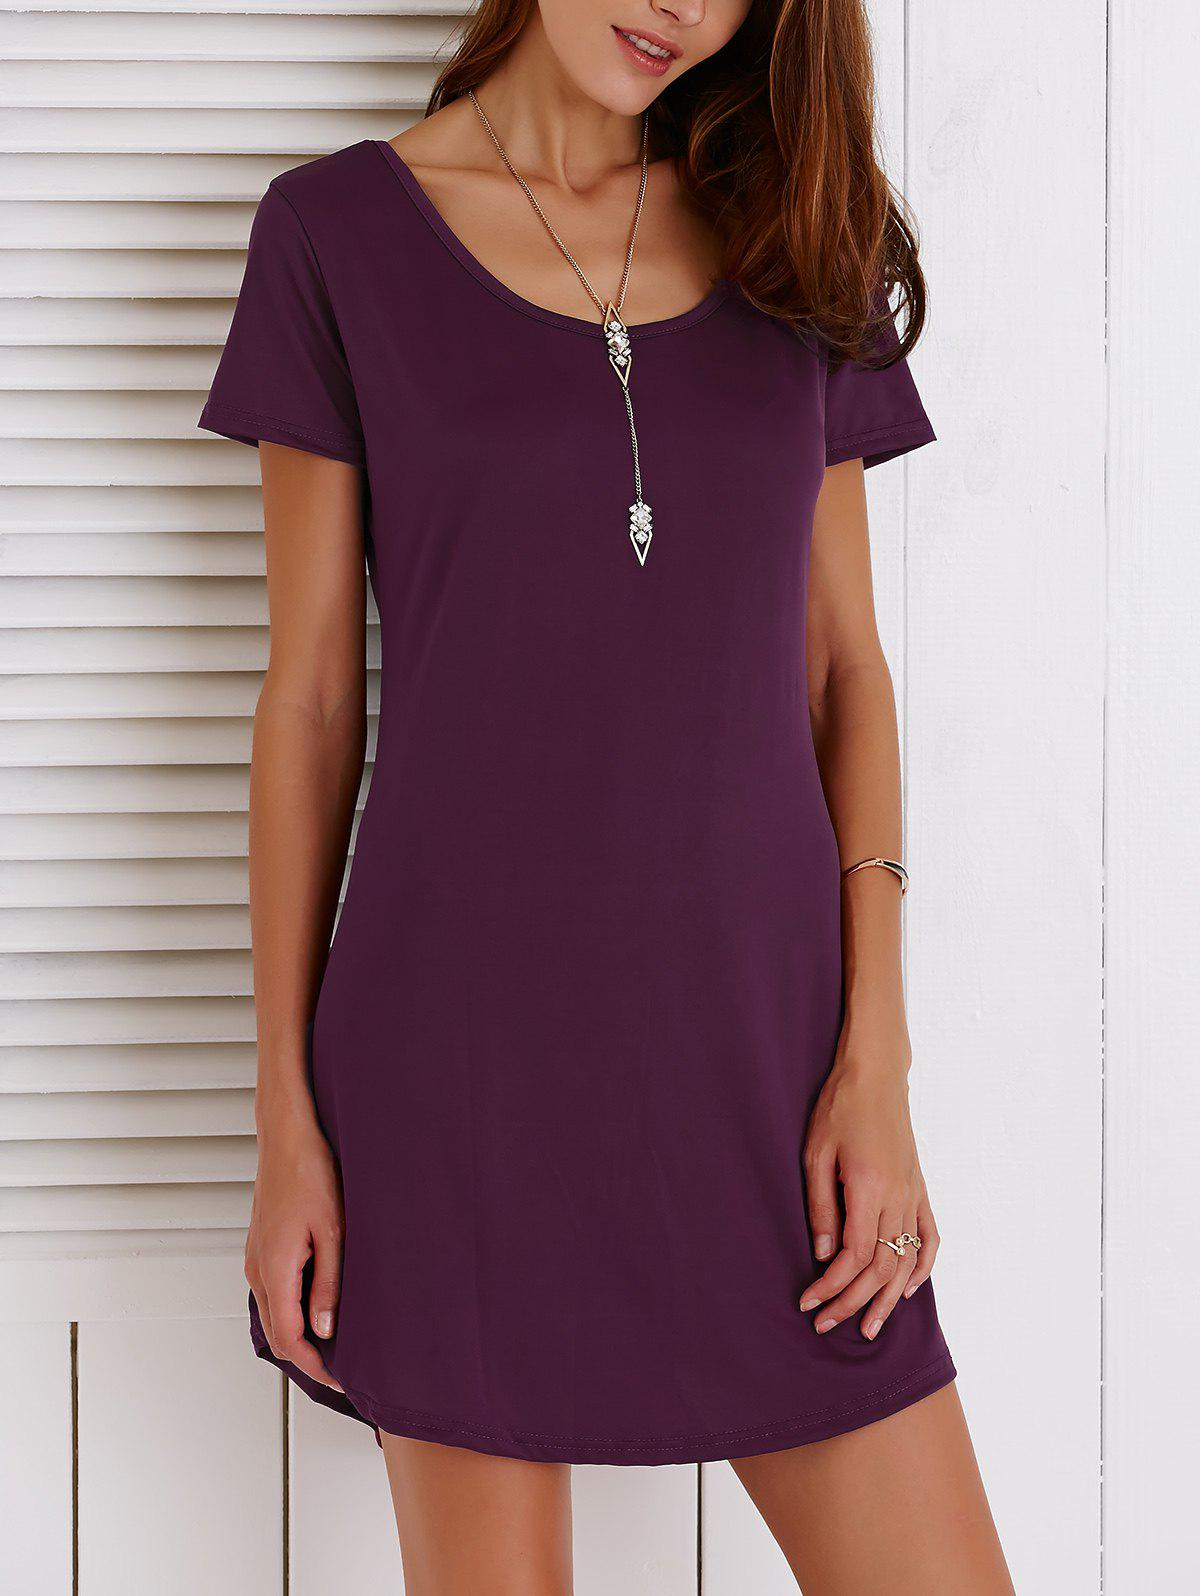 Hollow Out Short Sleeves Scoop Neck Dress - WINE RED 2XL